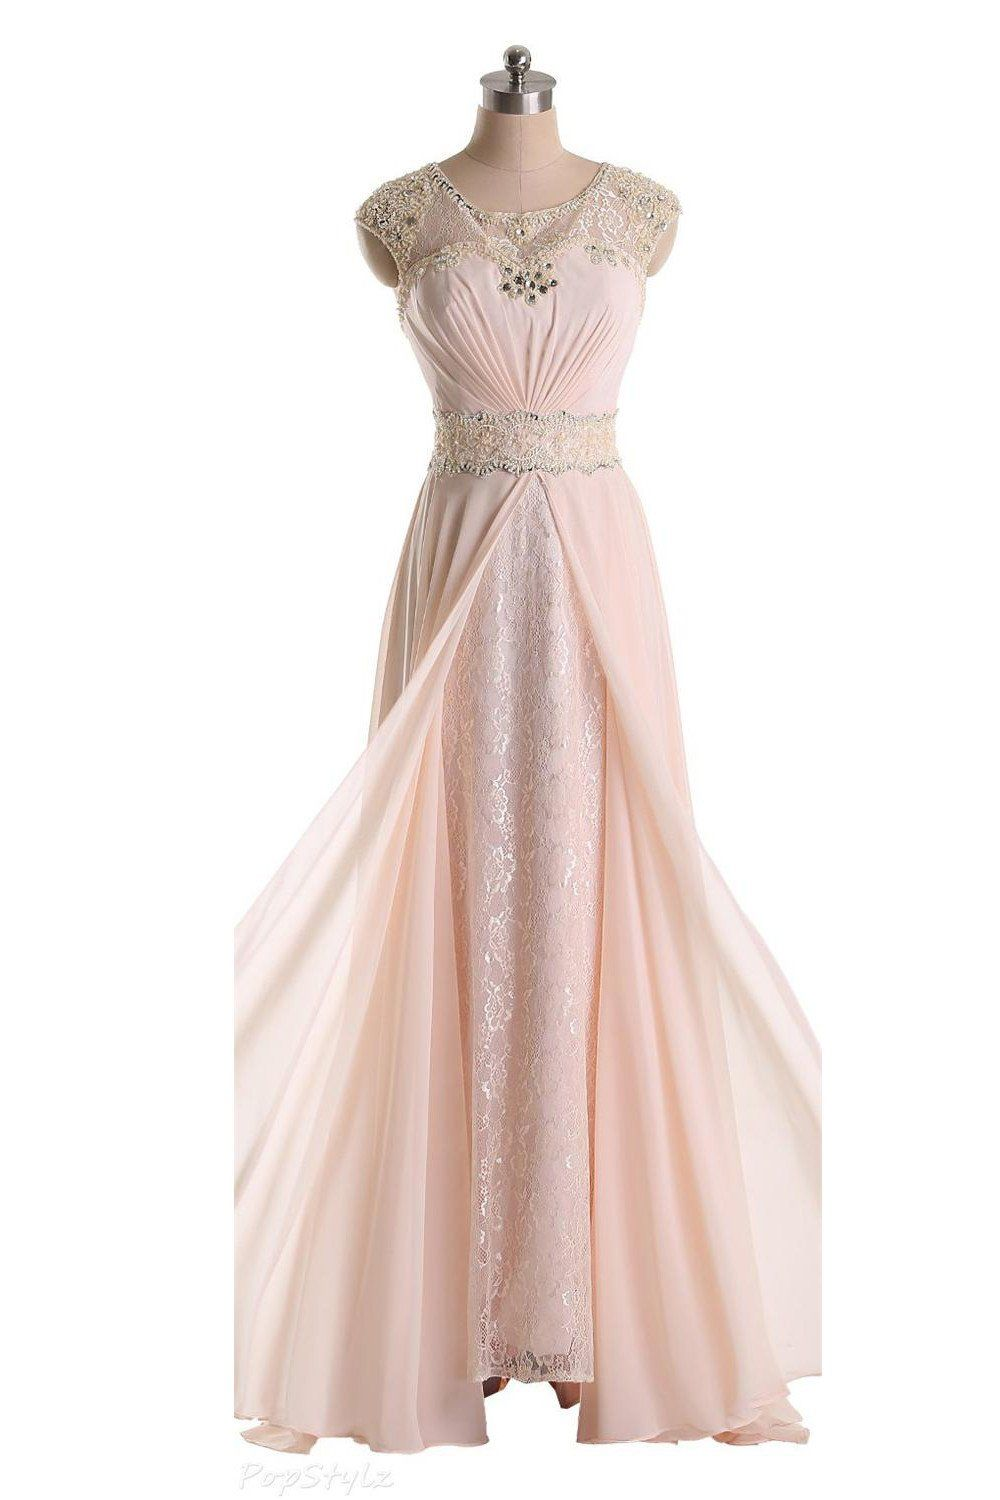 0ec3be70b1f0 Outlet Appealing Long A-line/Princess Prom Dresses, Pink Sleeveless With  Rhinestone Floor